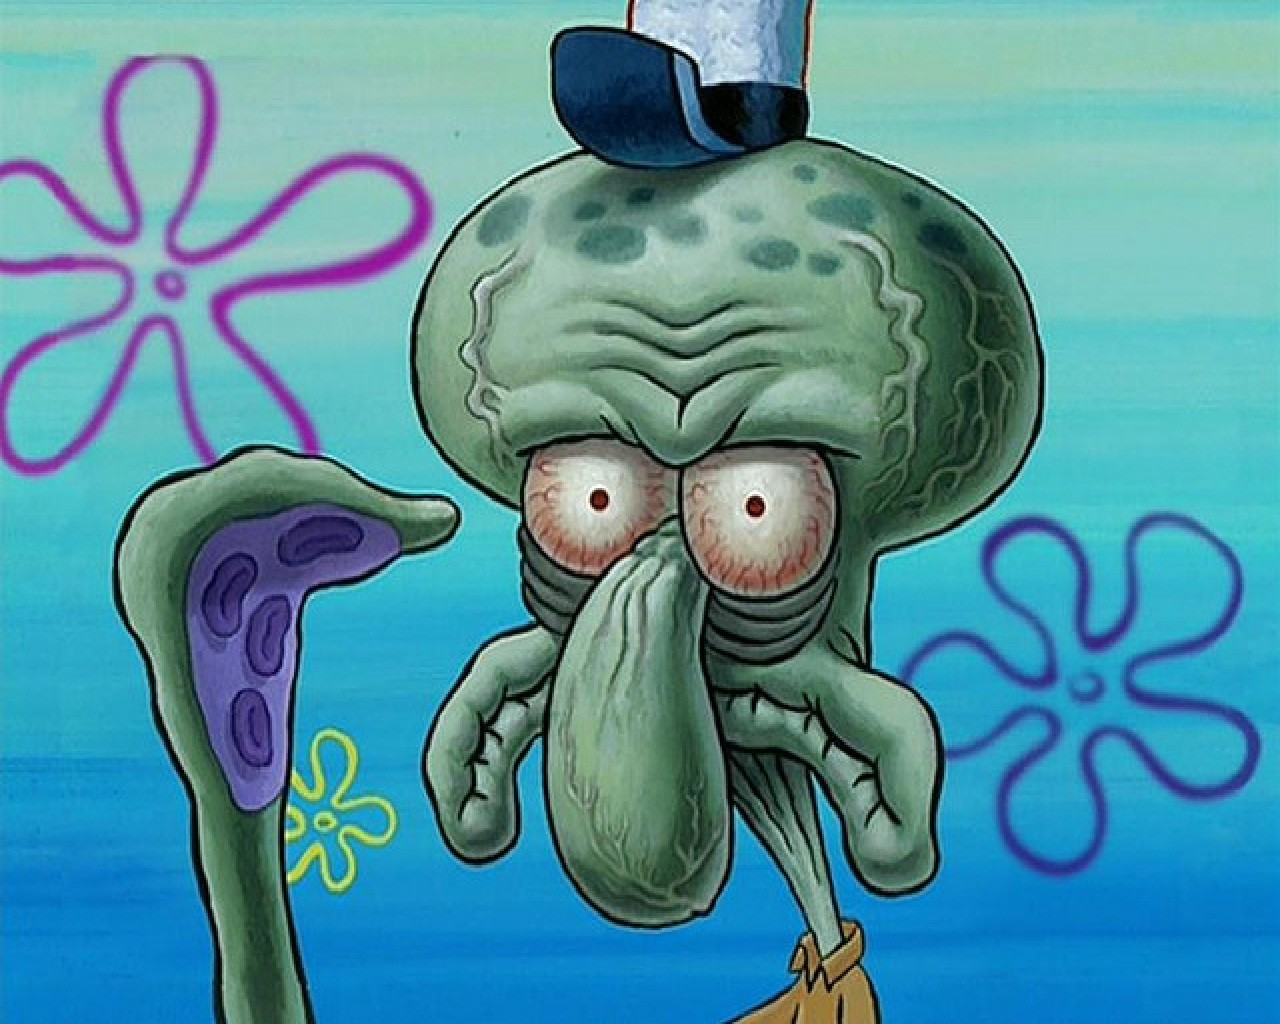 Castle Mania >> Squidward | The Mysterious Mr Enter Wiki | FANDOM powered by Wikia